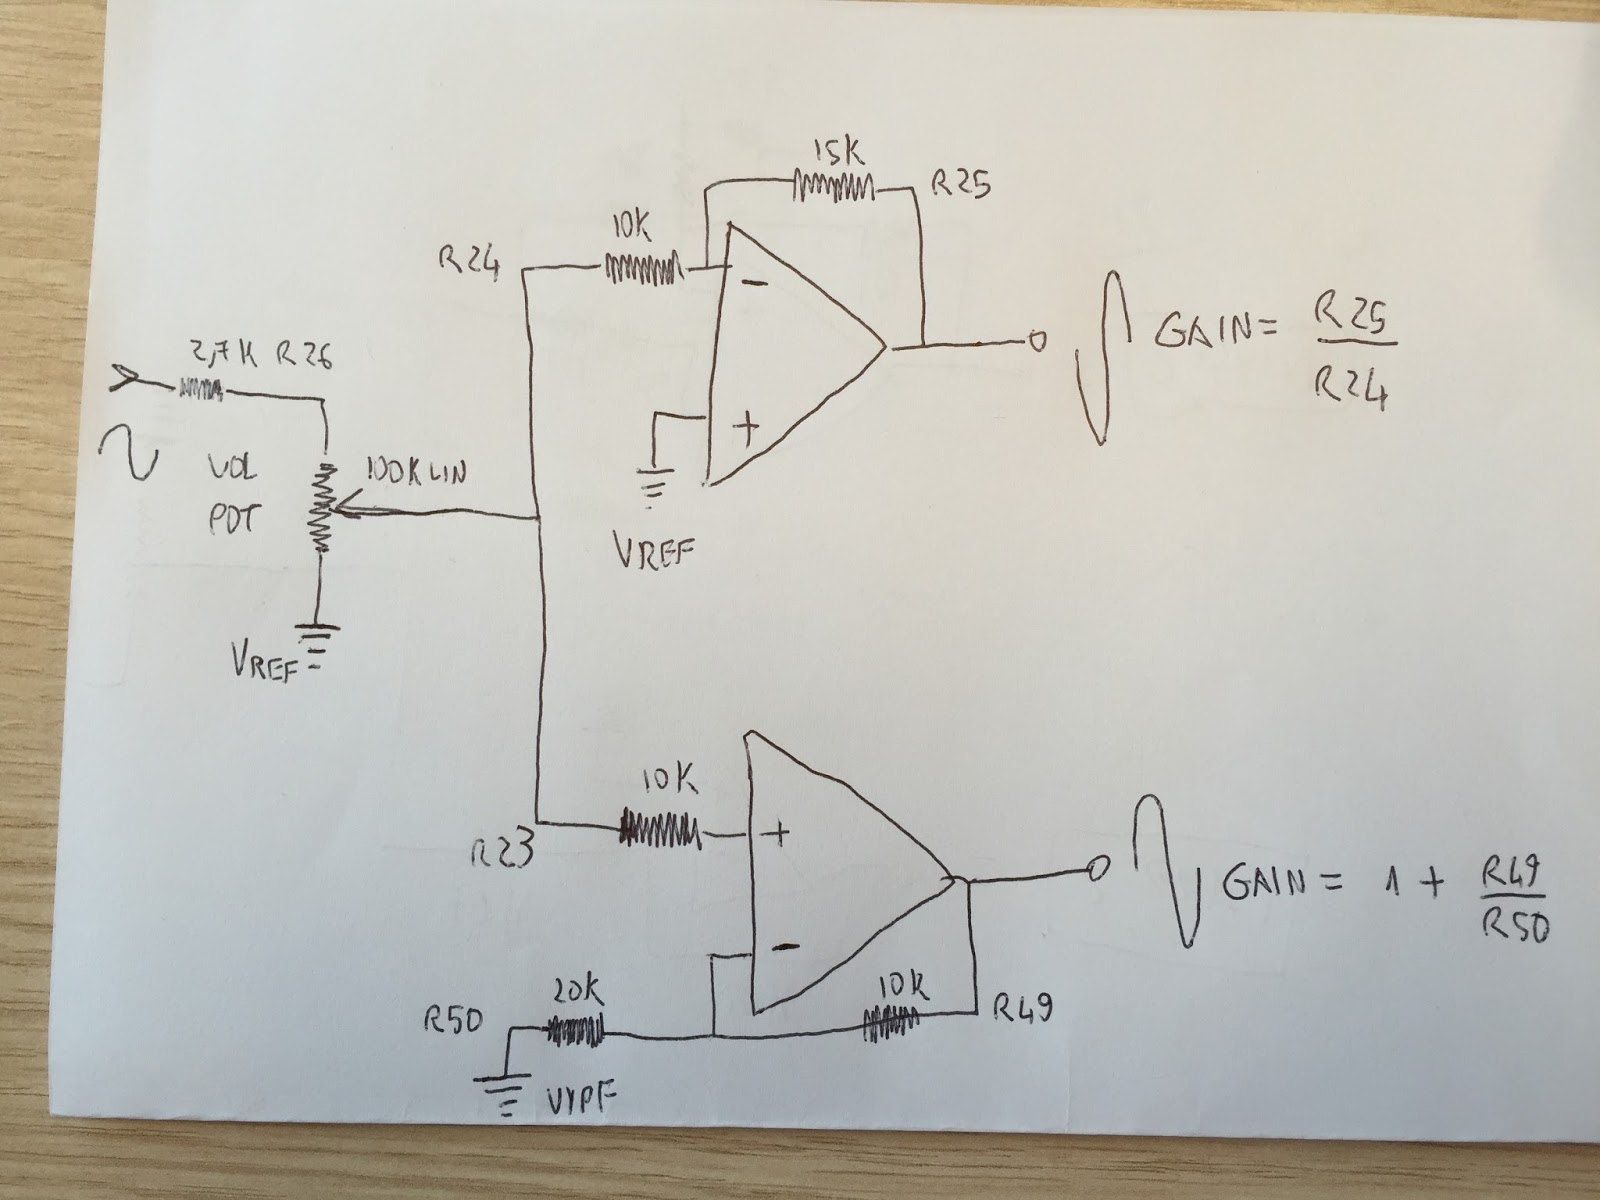 Ovation Op Pro Reverse Engineering Draft Of The Post Volume Circuit Diagram Potentiometer